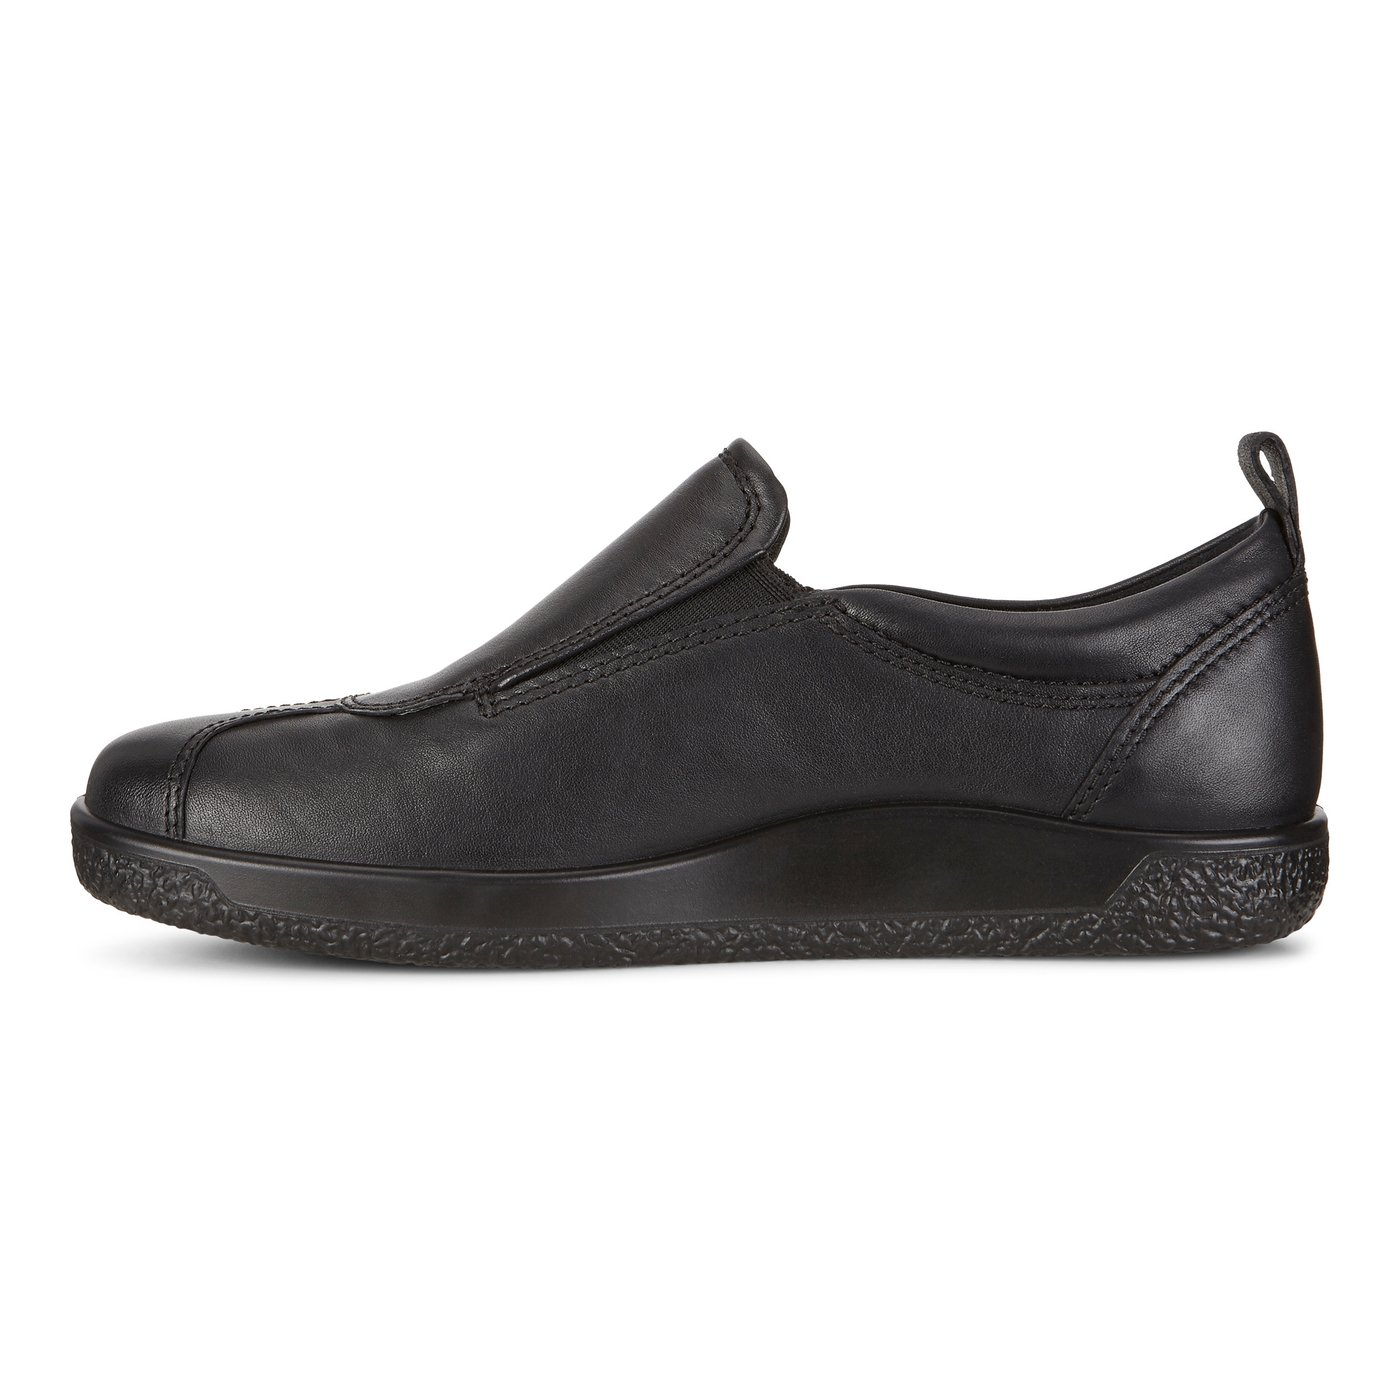 ECCO SOFT 1 W Slip-on